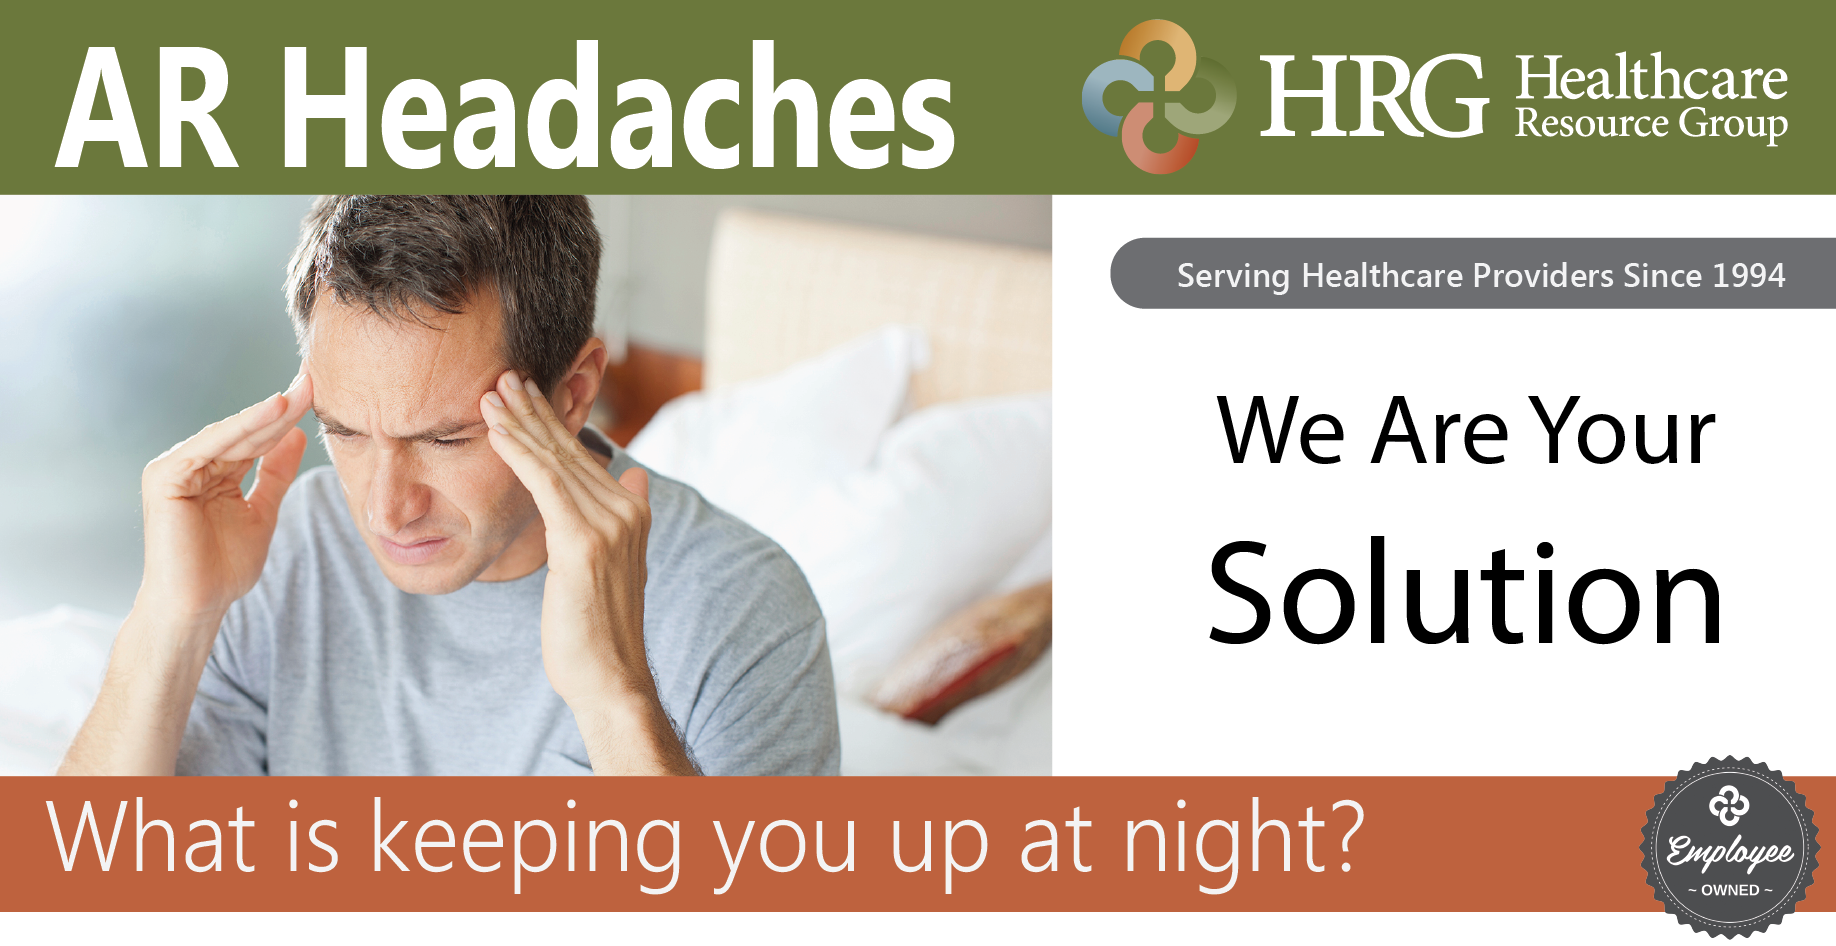 AR Headaches Keeping You Up At Night?